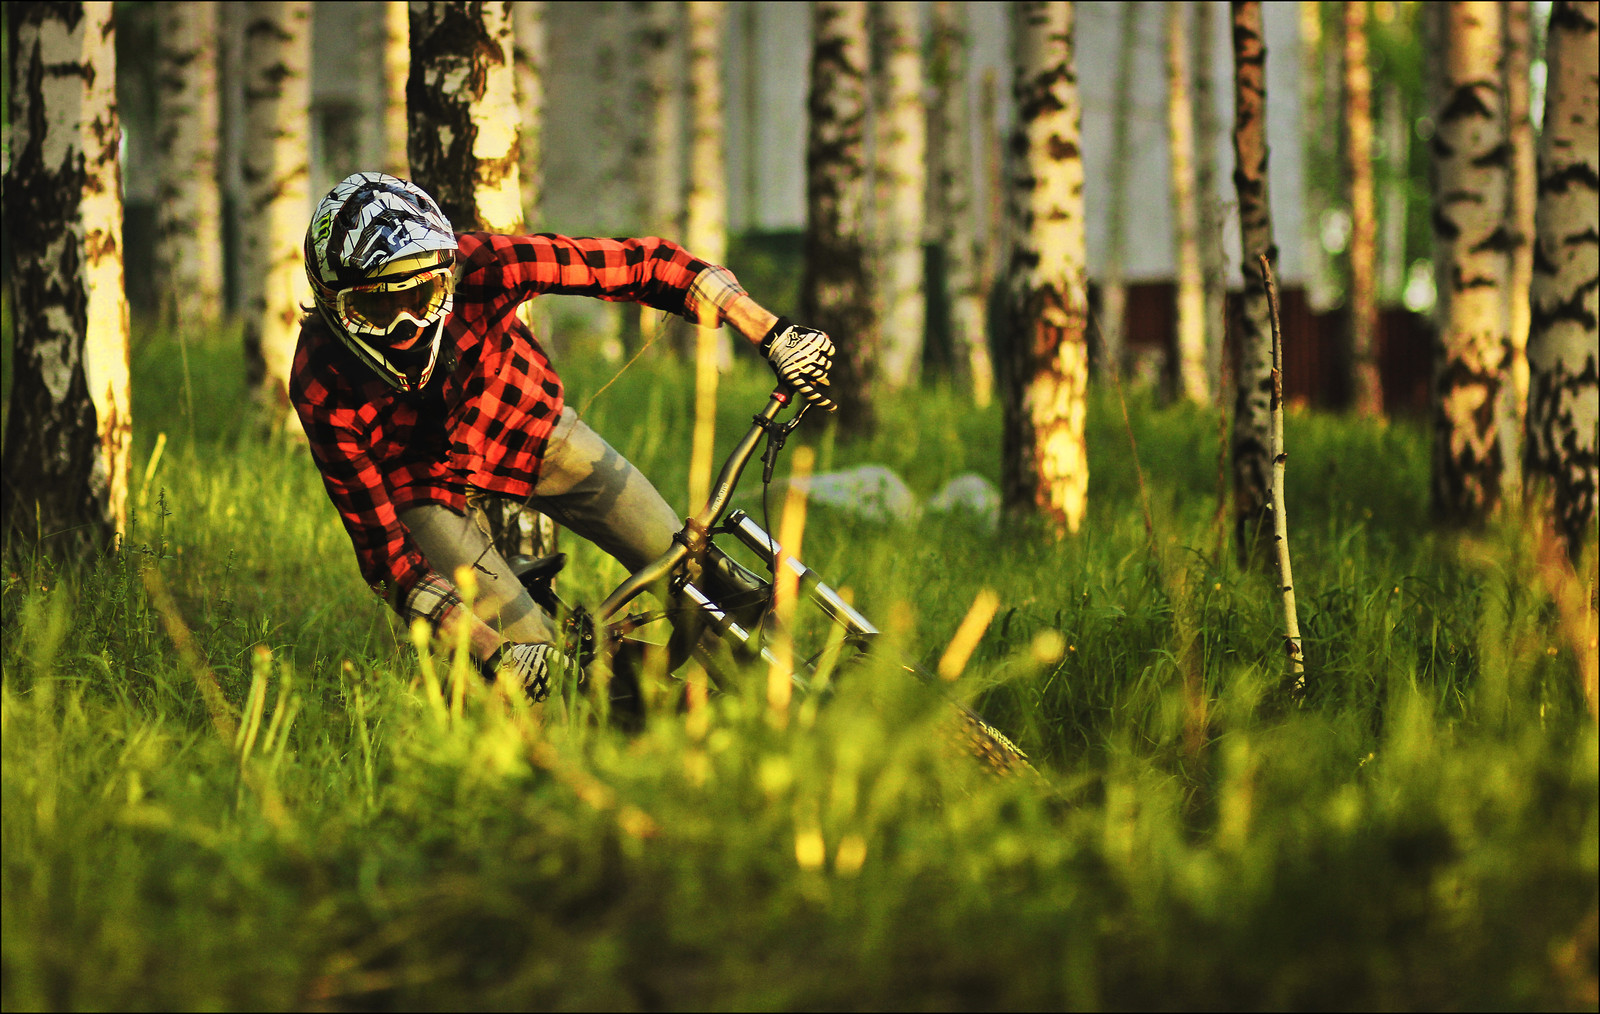 IMG 3367m - YakuT - Mountain Biking Pictures - Vital MTB